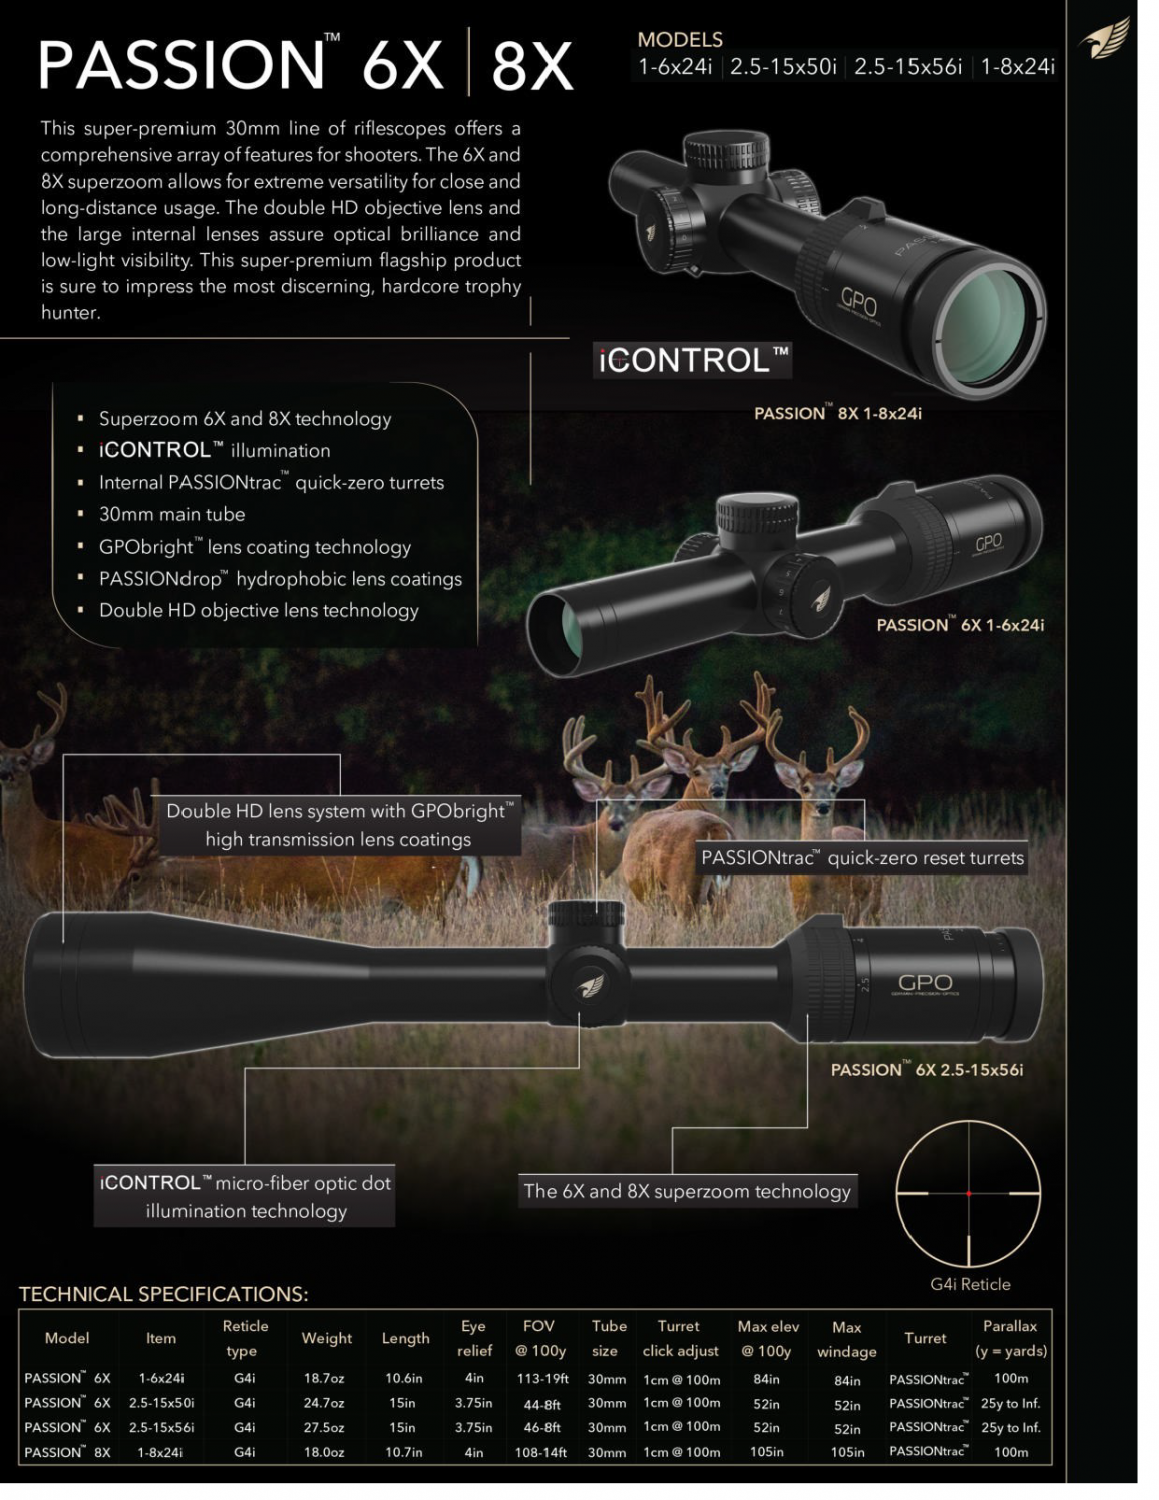 GPO also offers a variety of scopes intended for all types of rifle work.